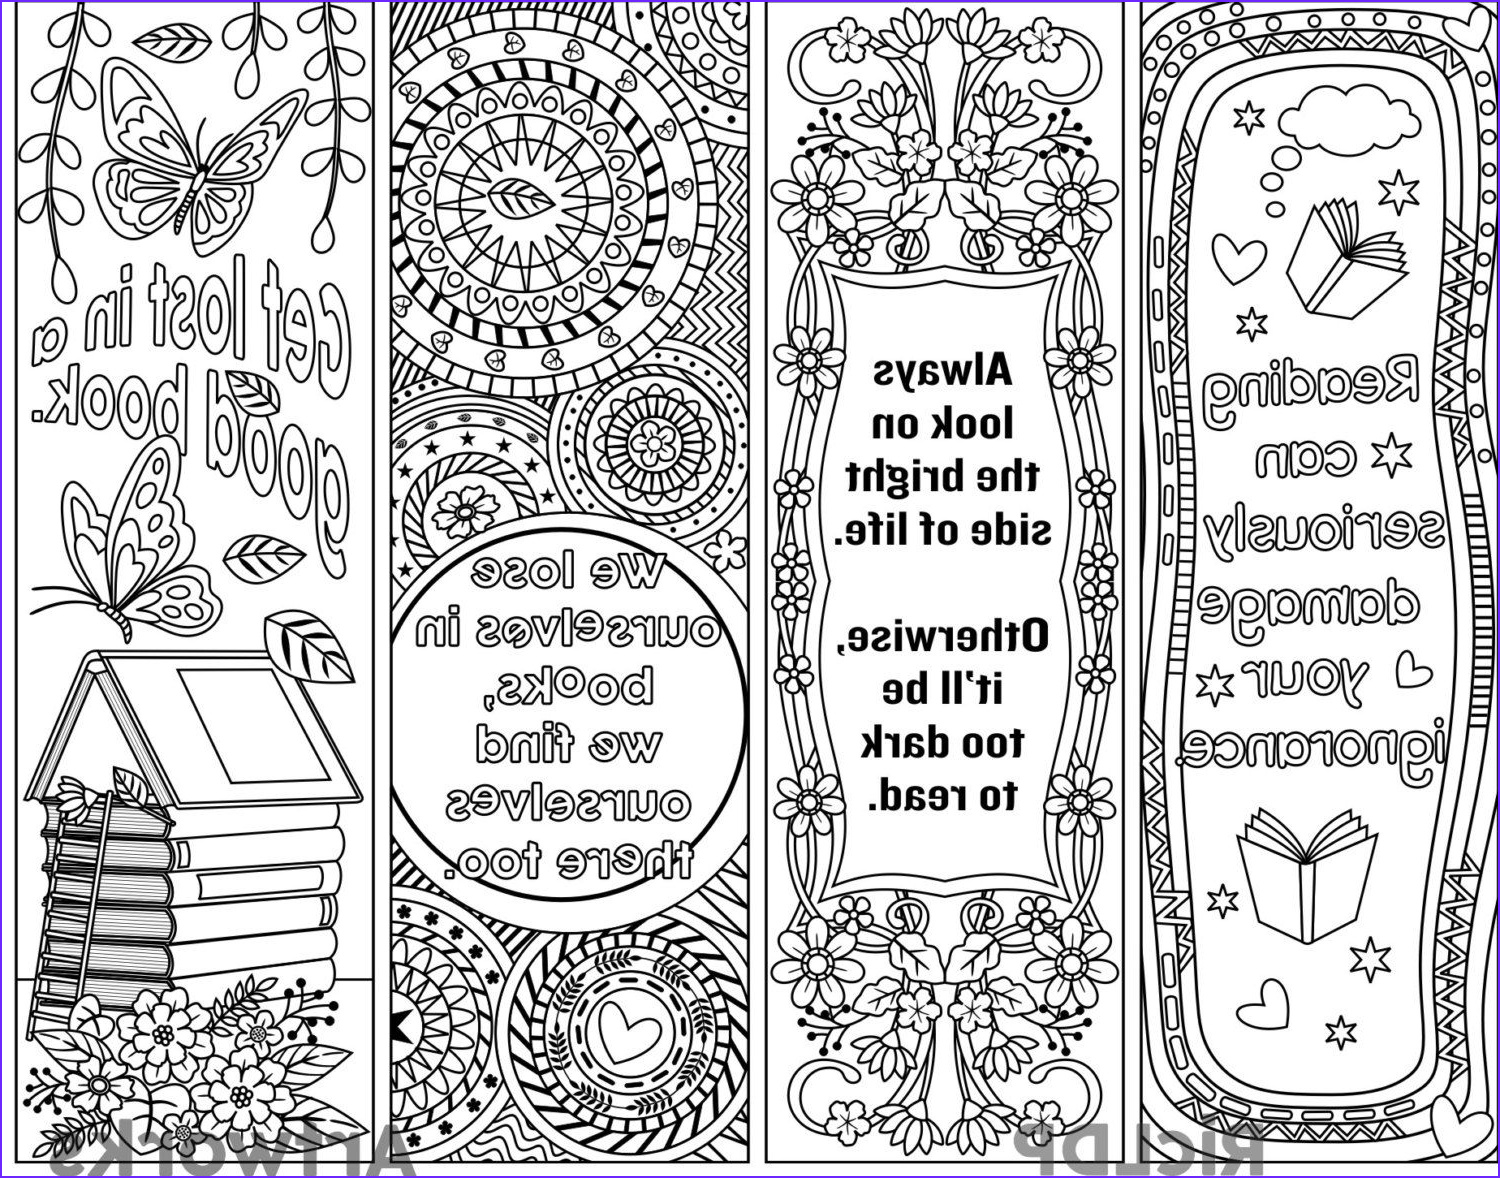 Free Printable Coloring Bookmarks Beautiful Image Set Of 4 Coloring Bookmarks with Quotes Plus the Colored